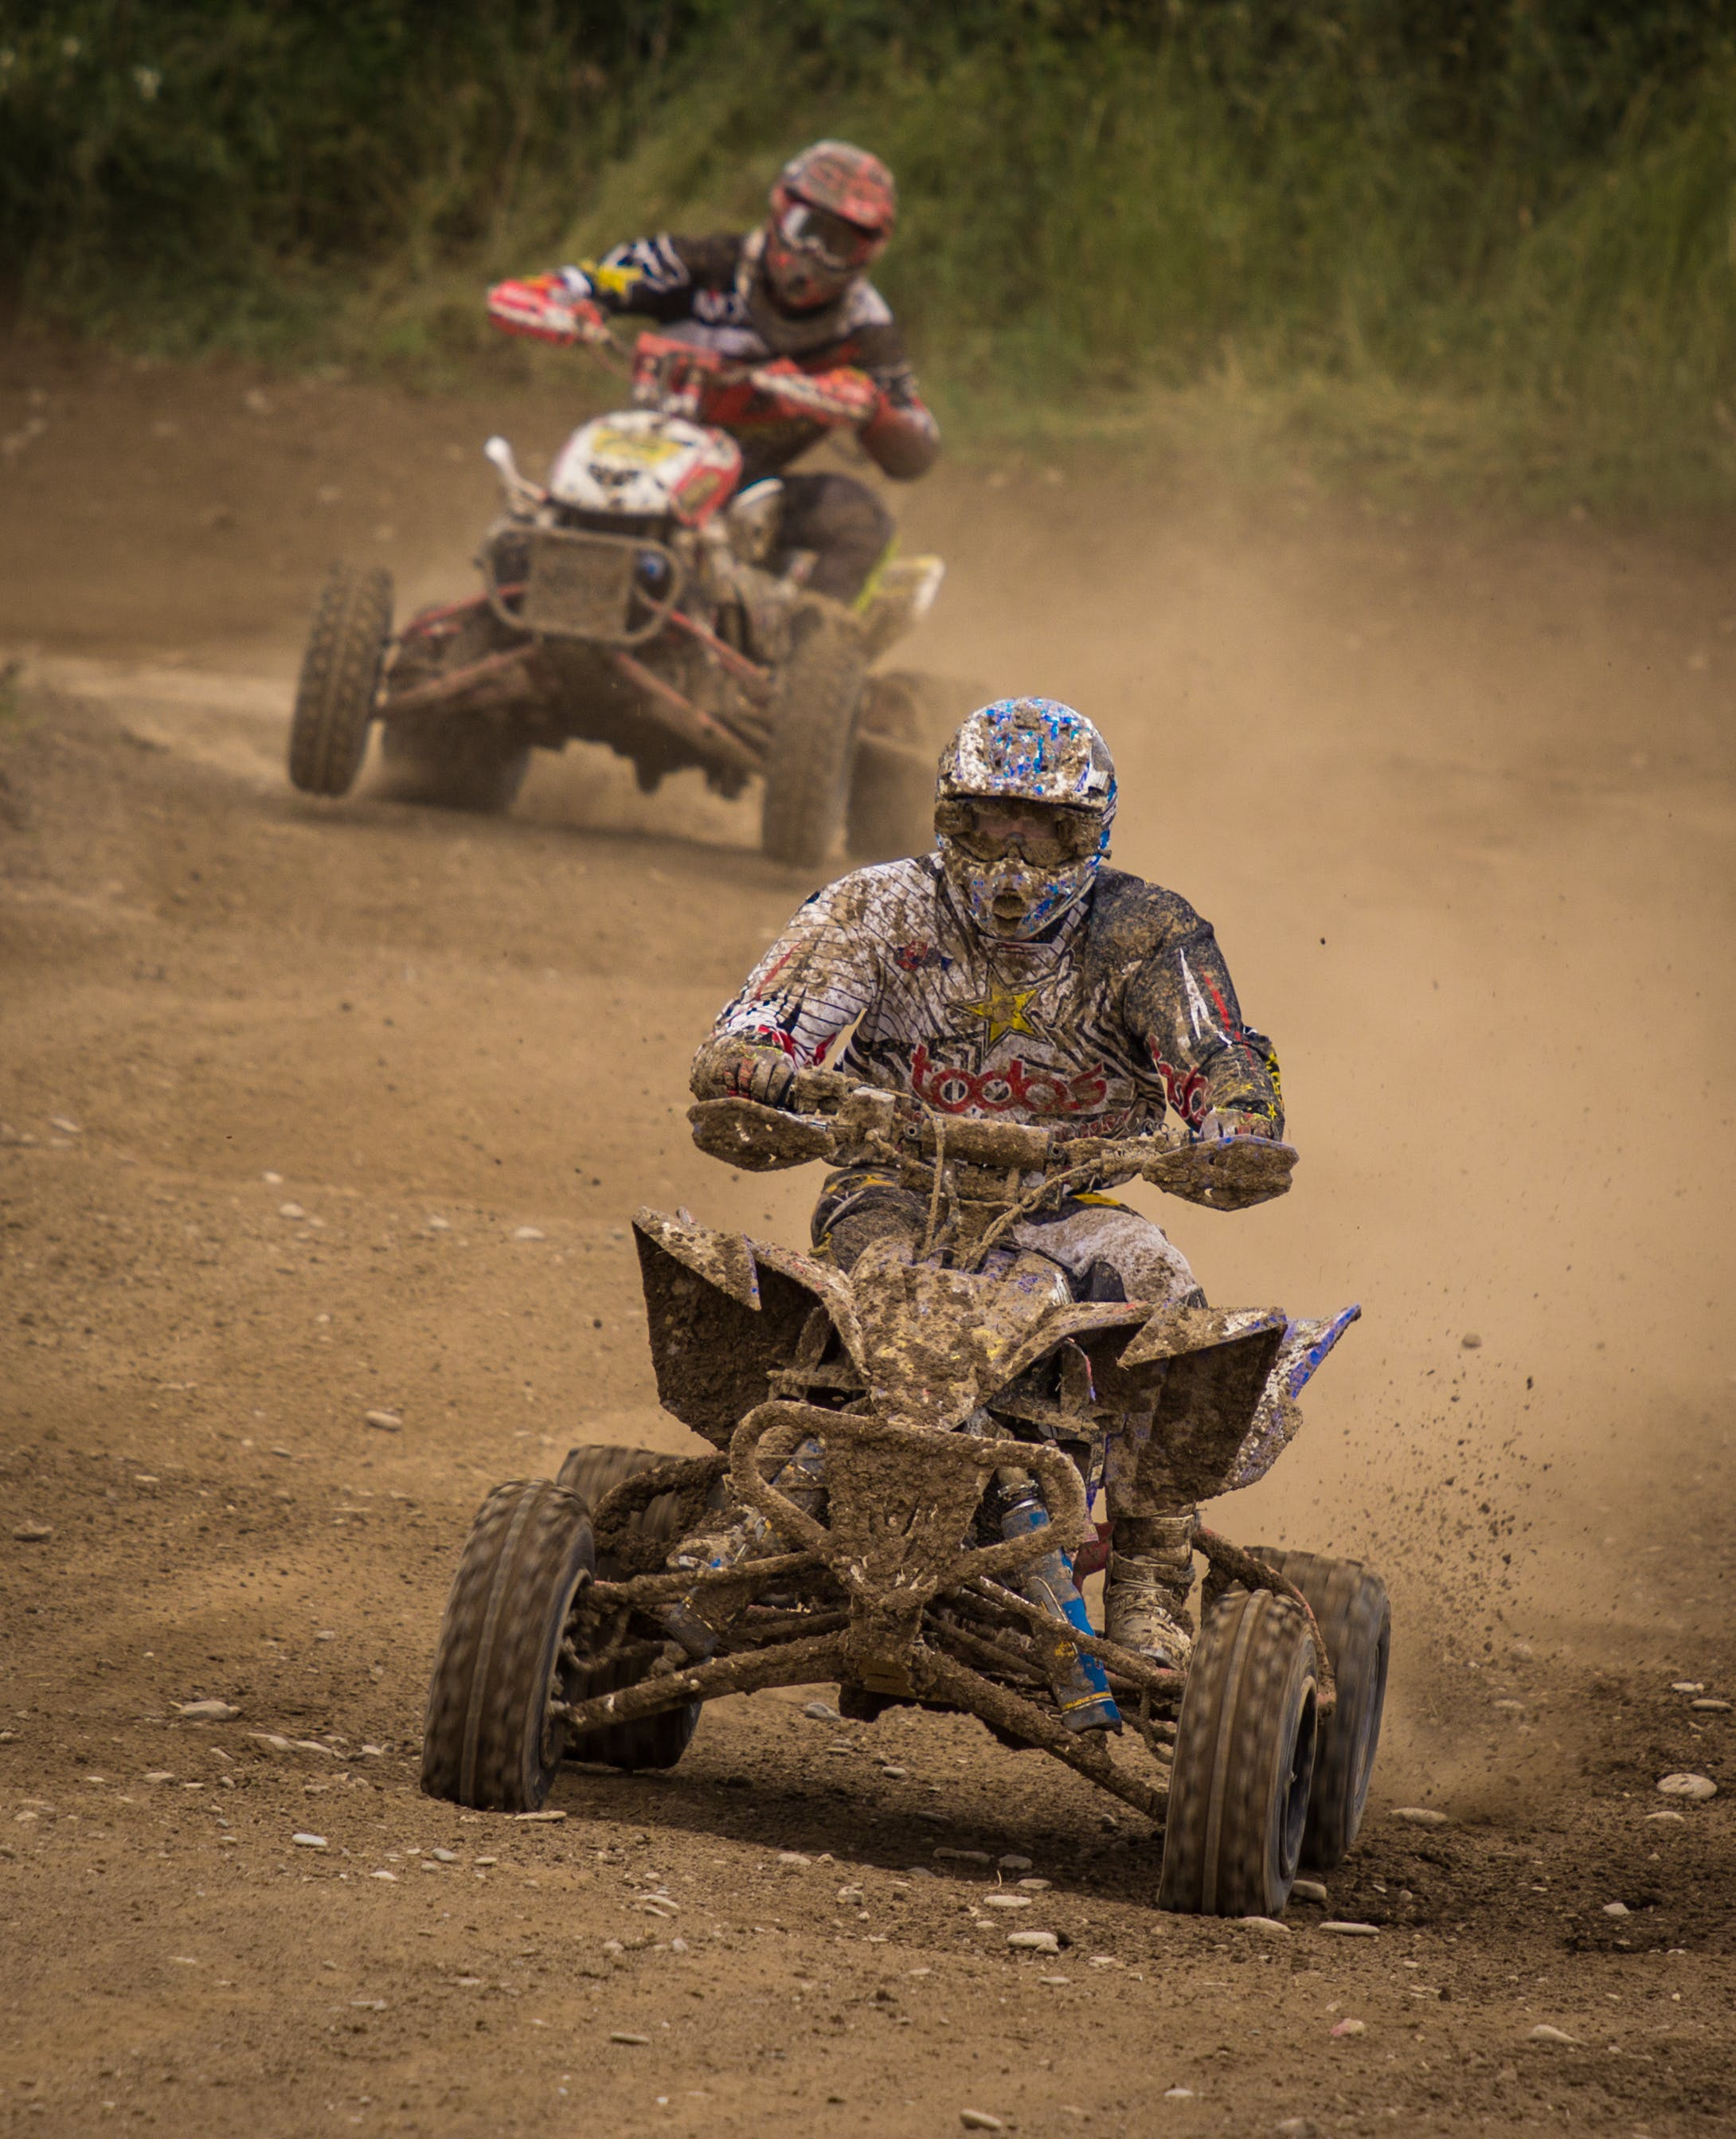 Man Wearing White Racing Outfit Stained With Mud Riding on Stained Mud Atv